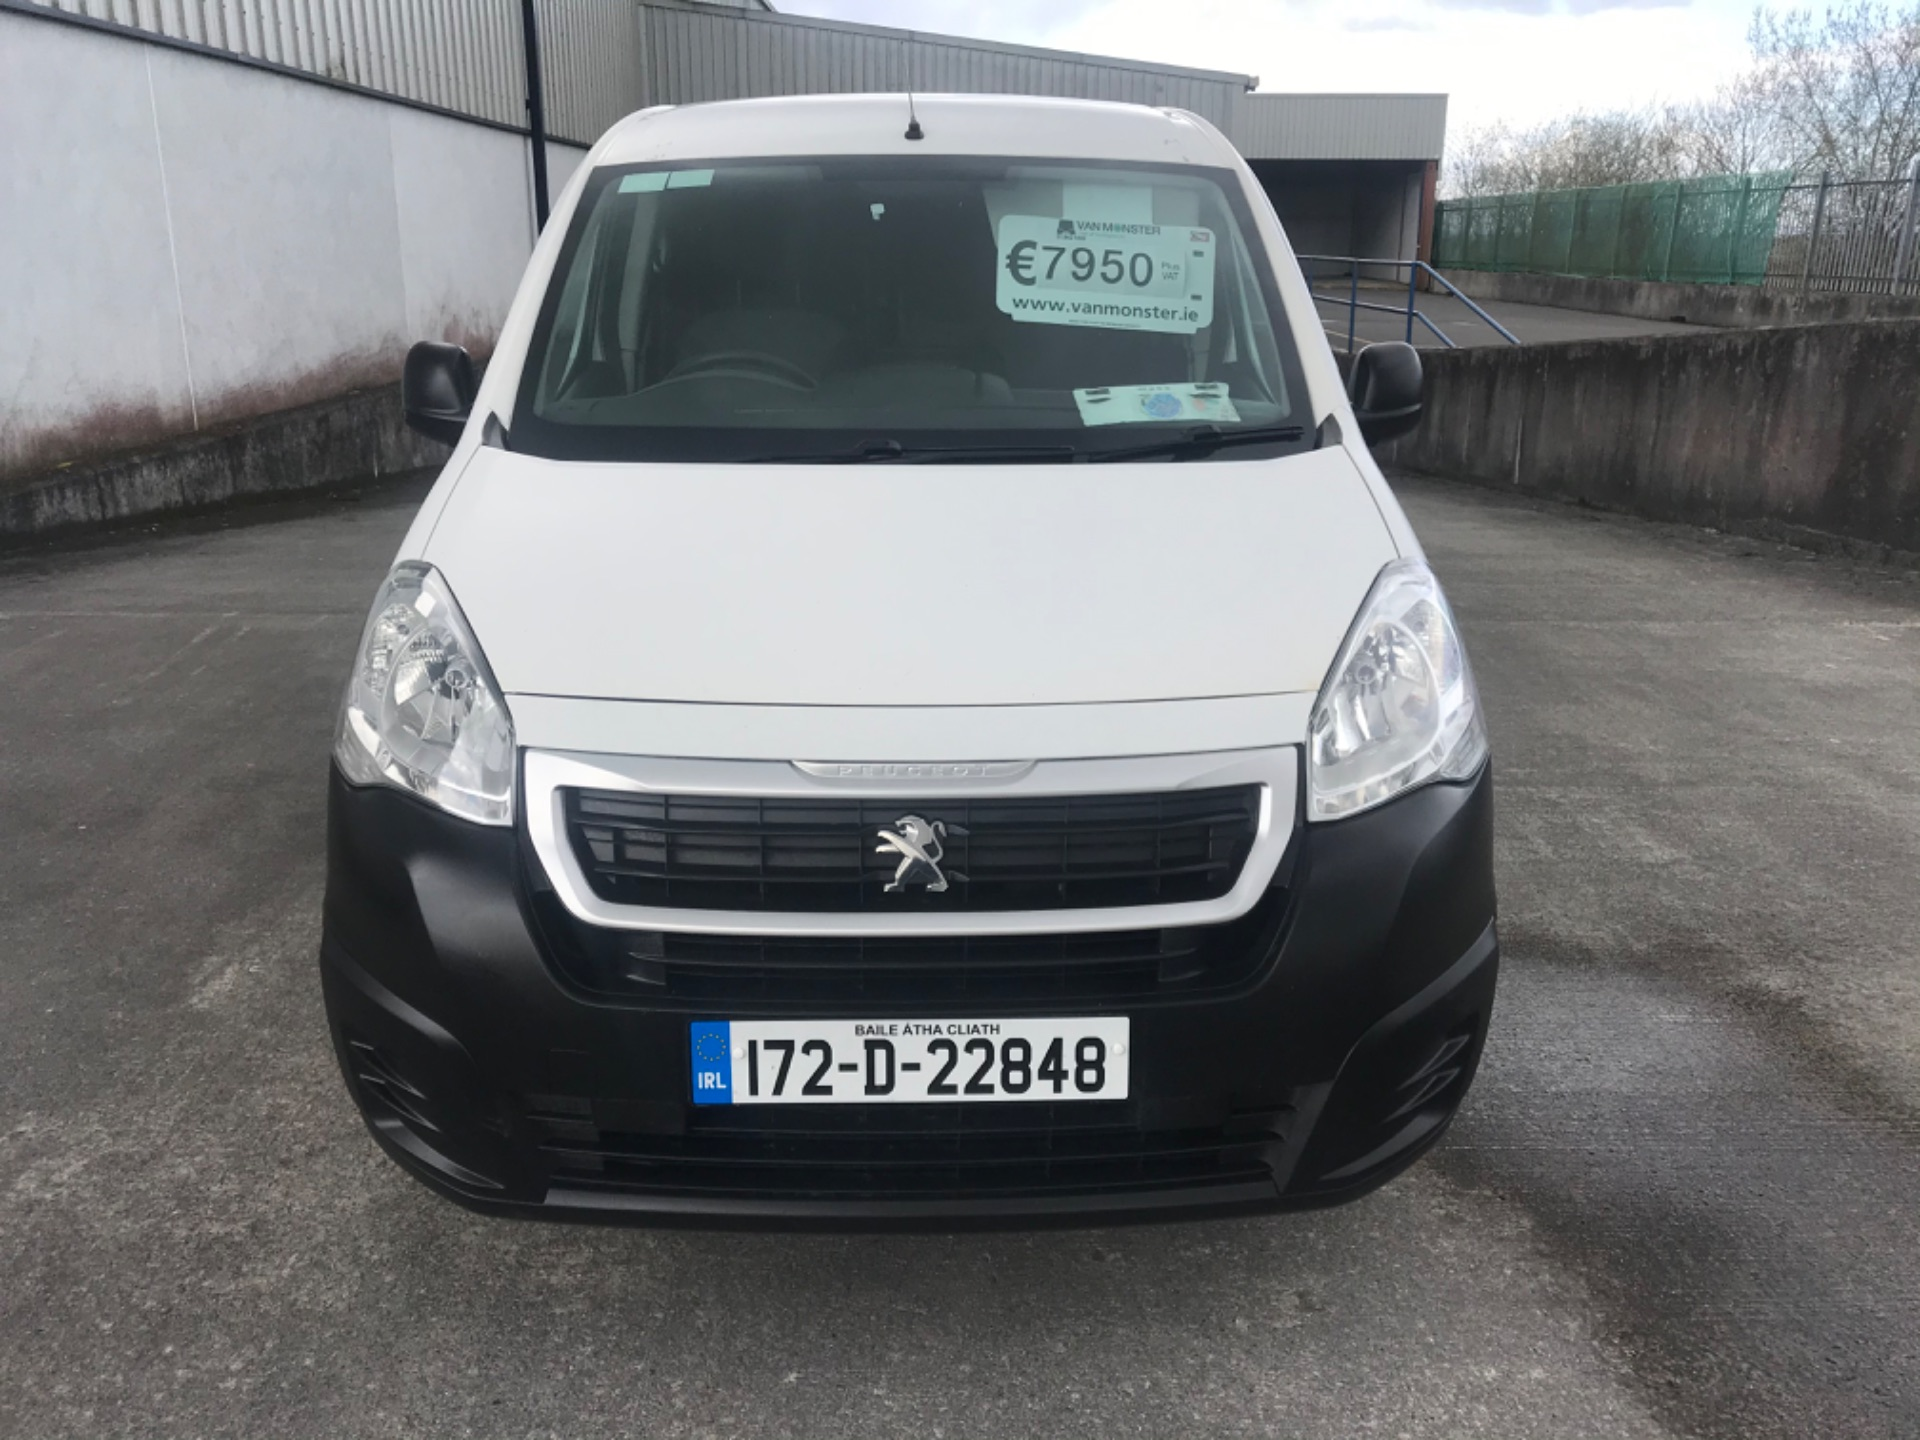 2017 Peugeot Partner Access 1.6 Blue HDI 75 Side DO (172D22848) Image 2